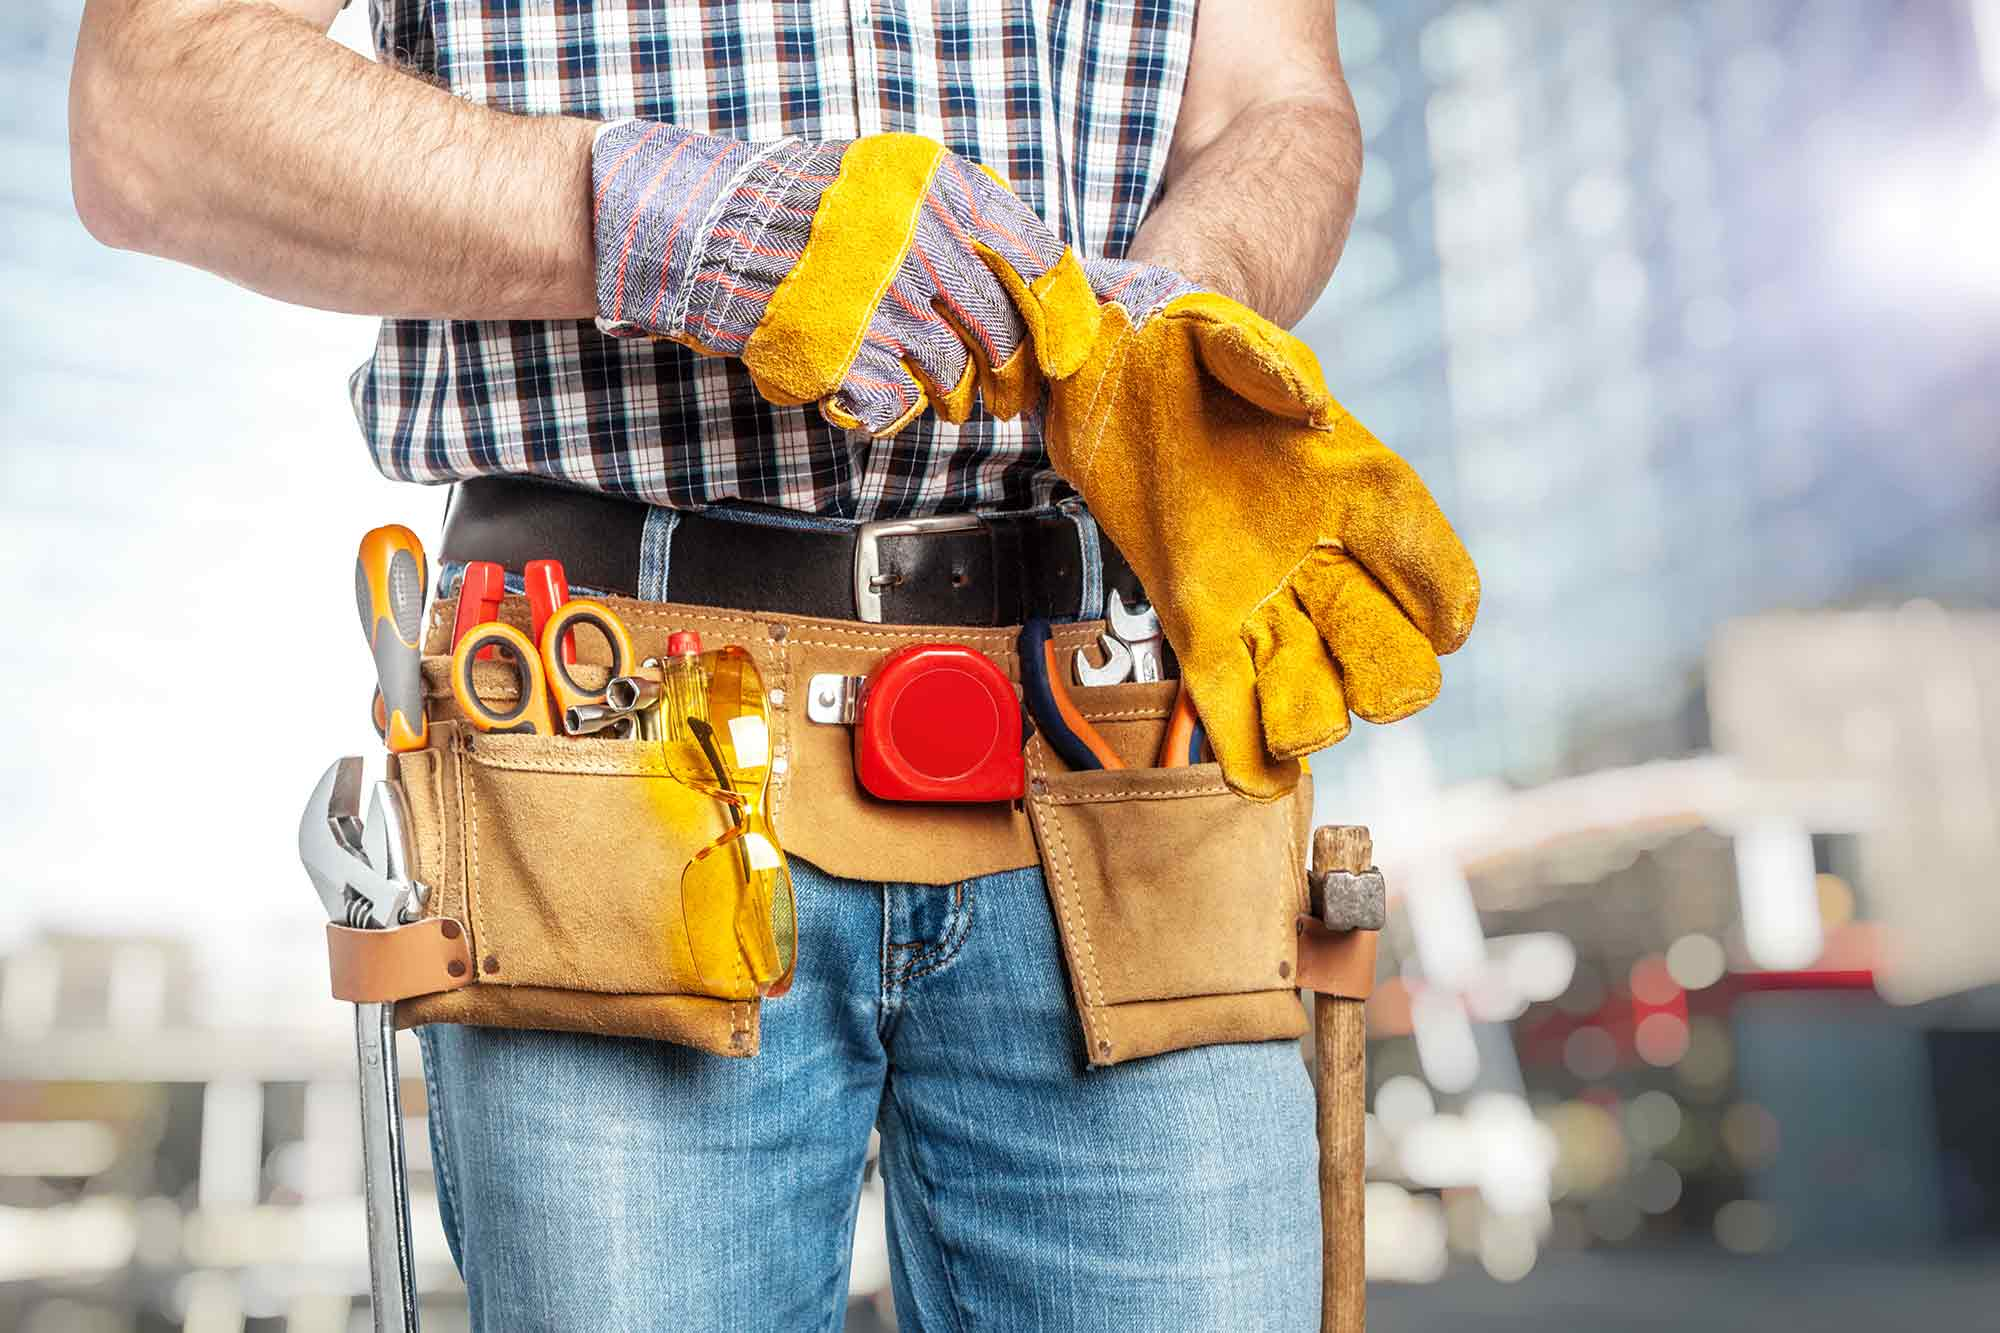 Other Handyman Services